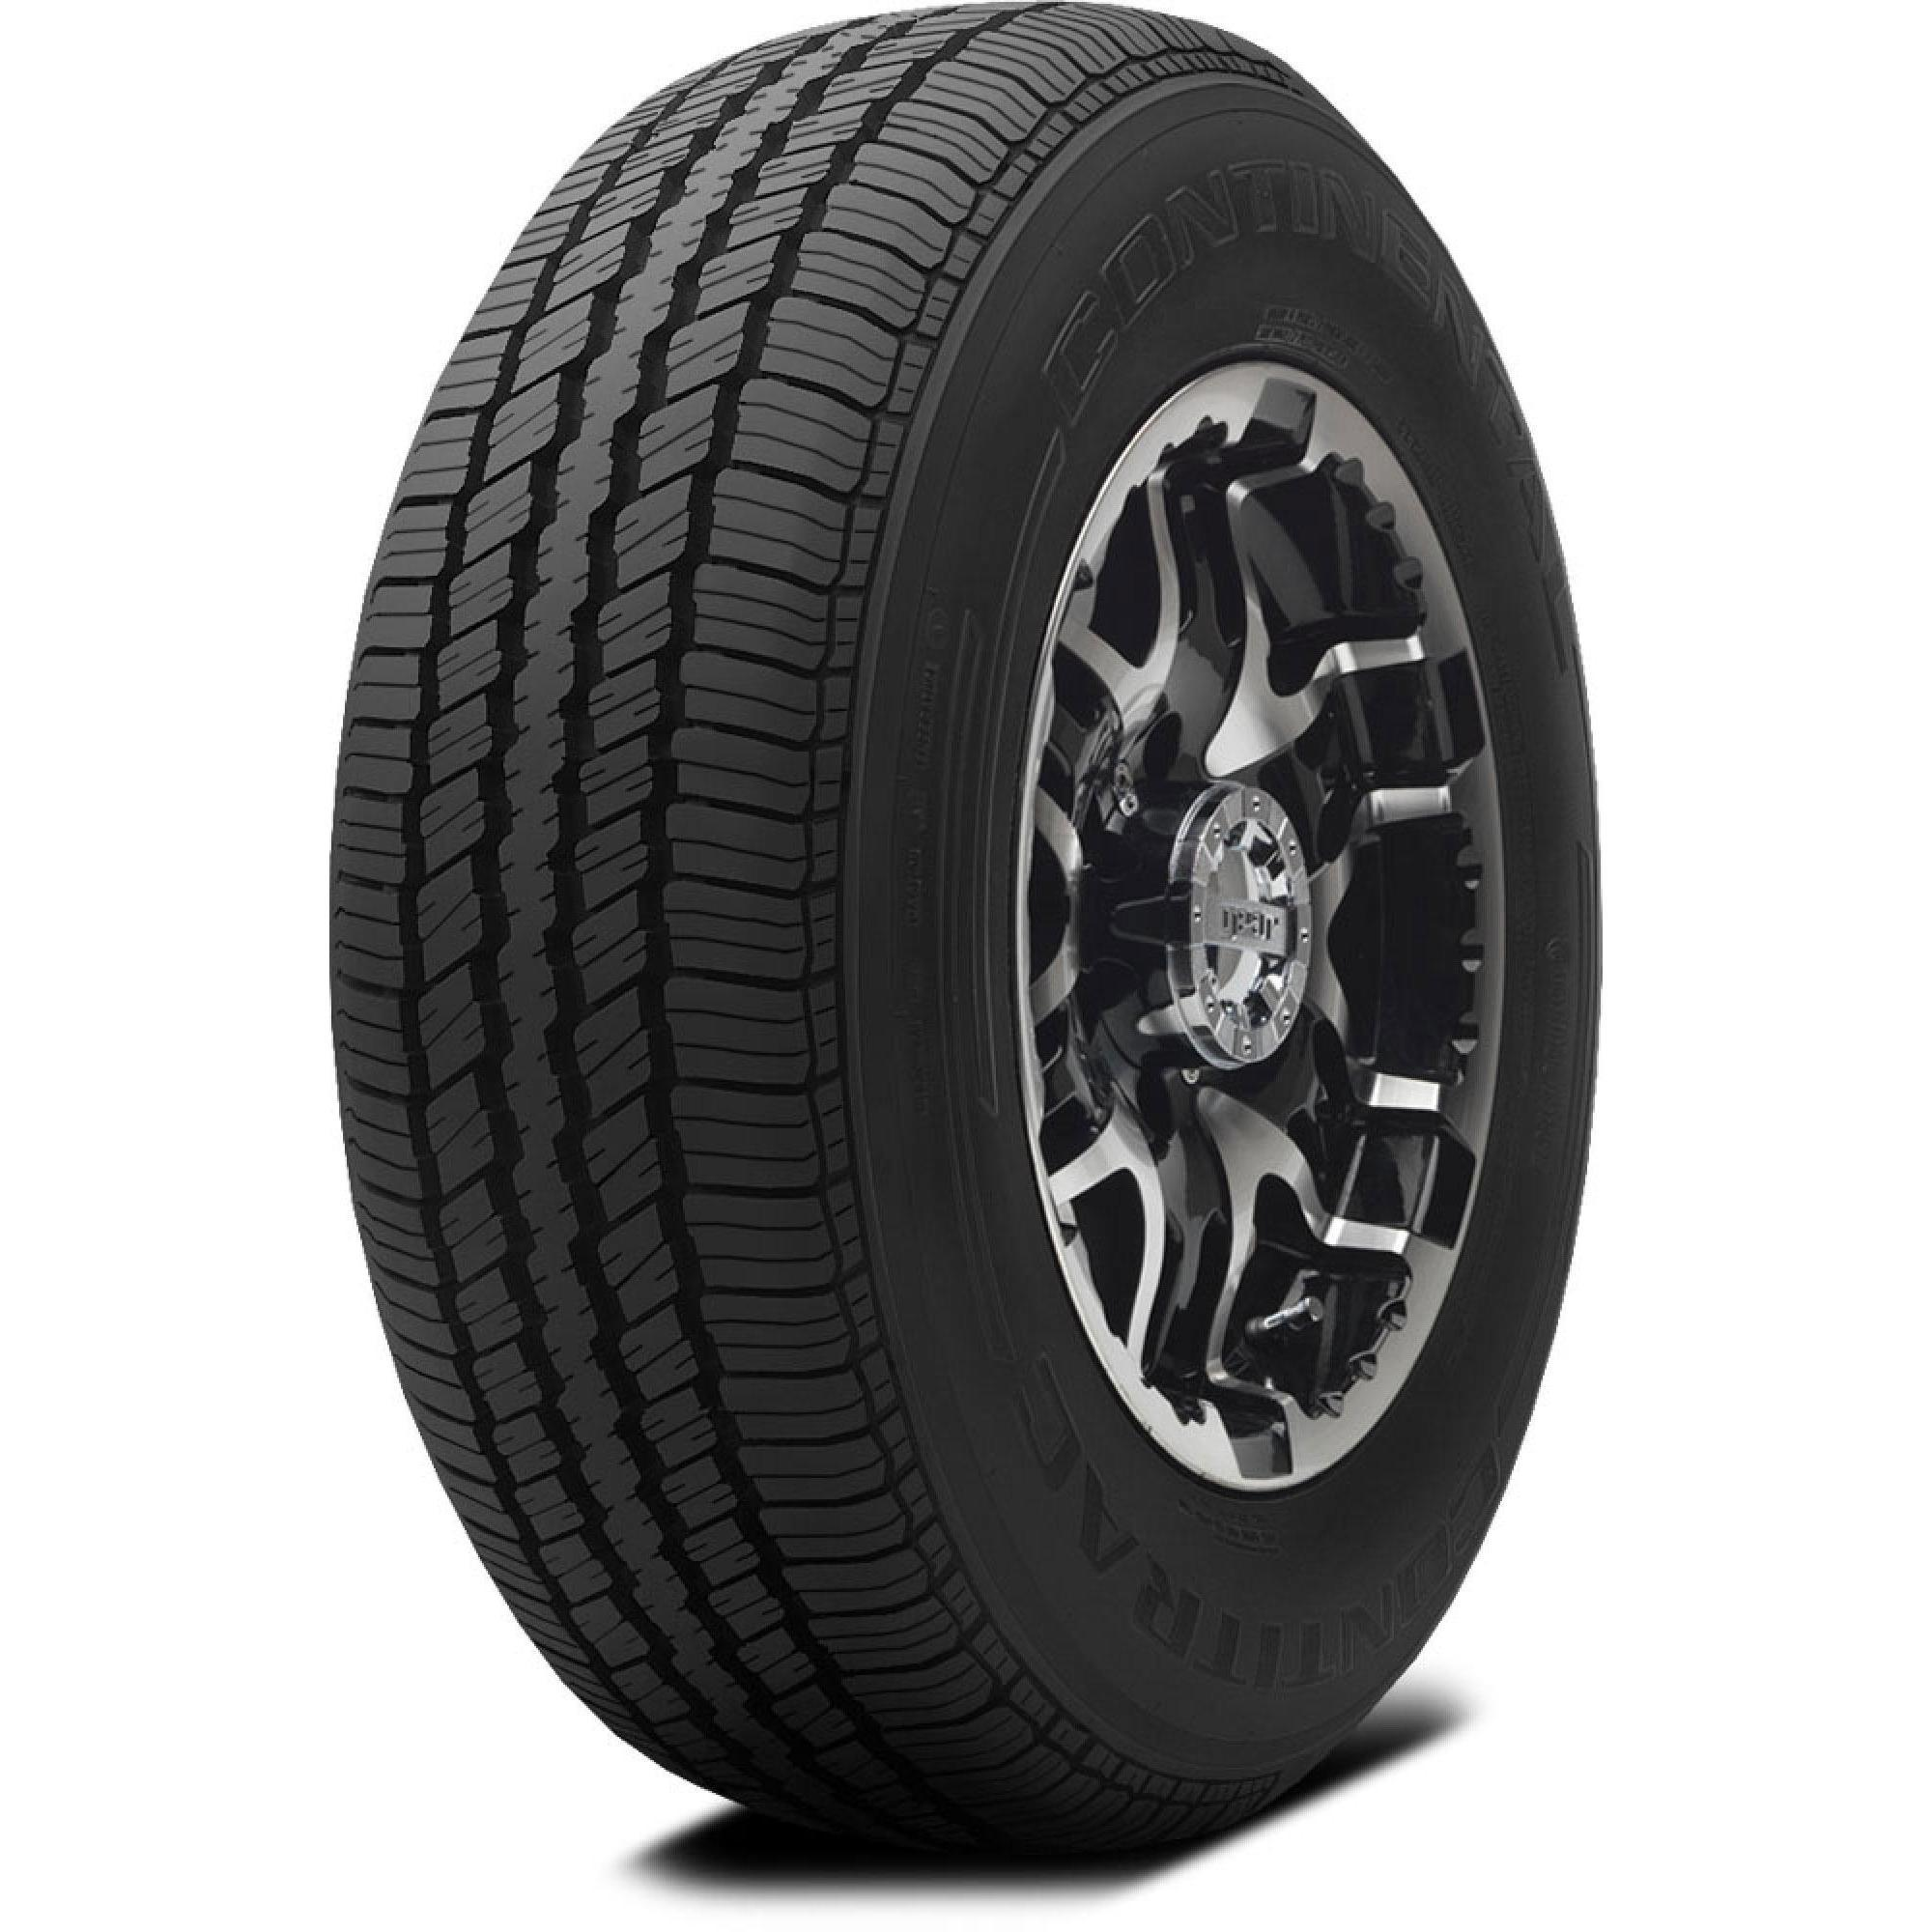 Continental ContiTrac | TireBuyer